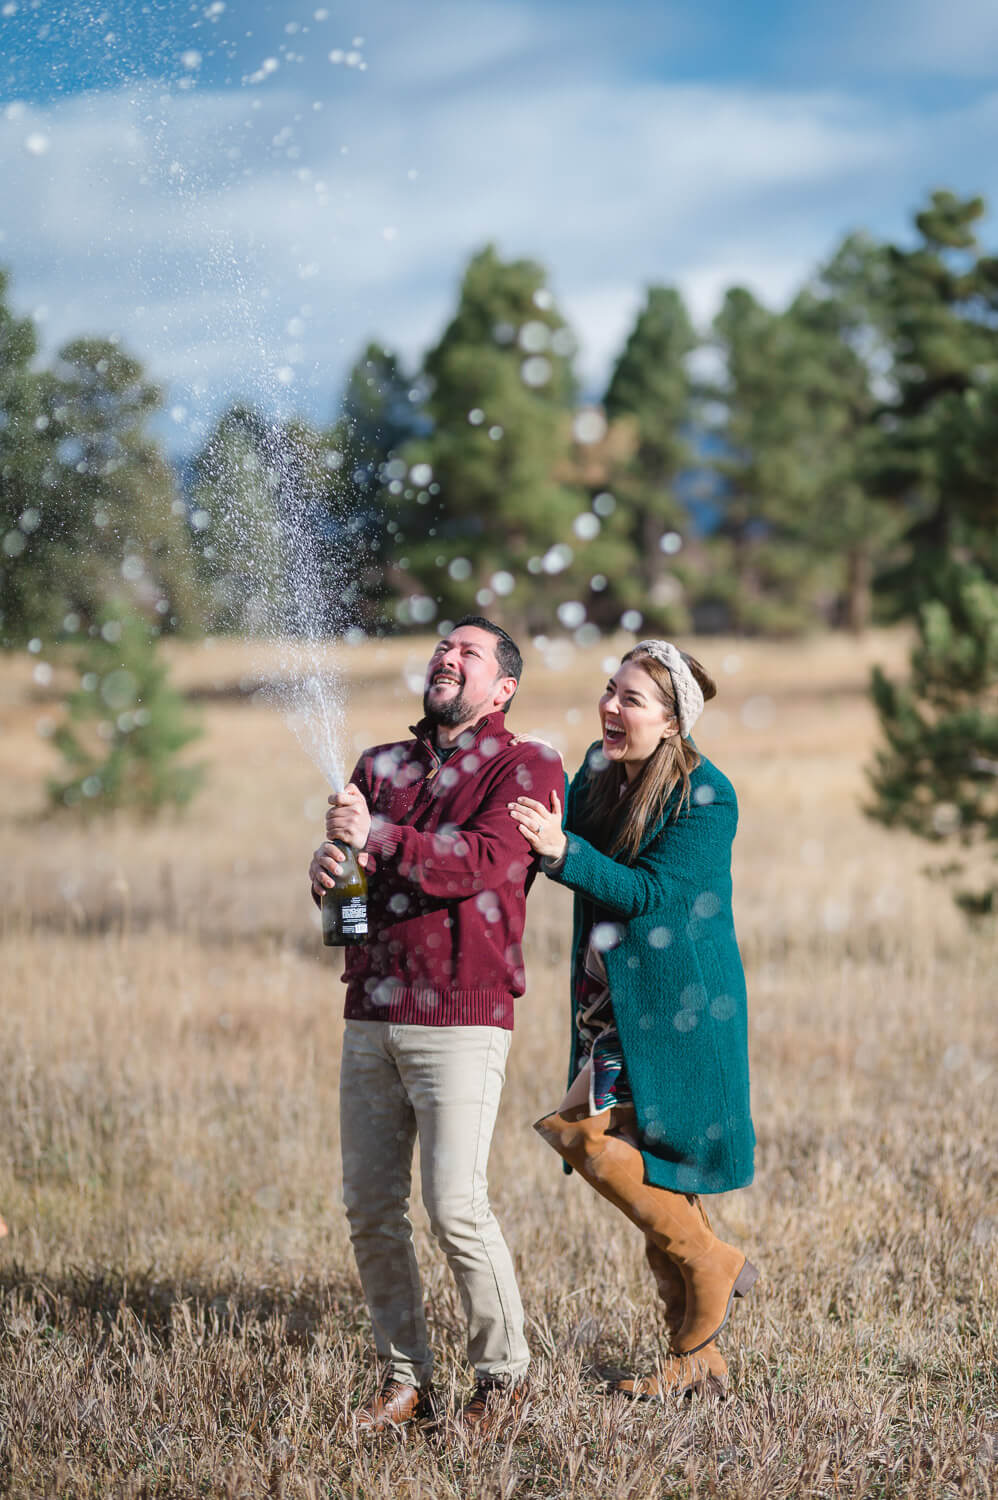 Durango Engagement Session - Celebrating Just getting engaged